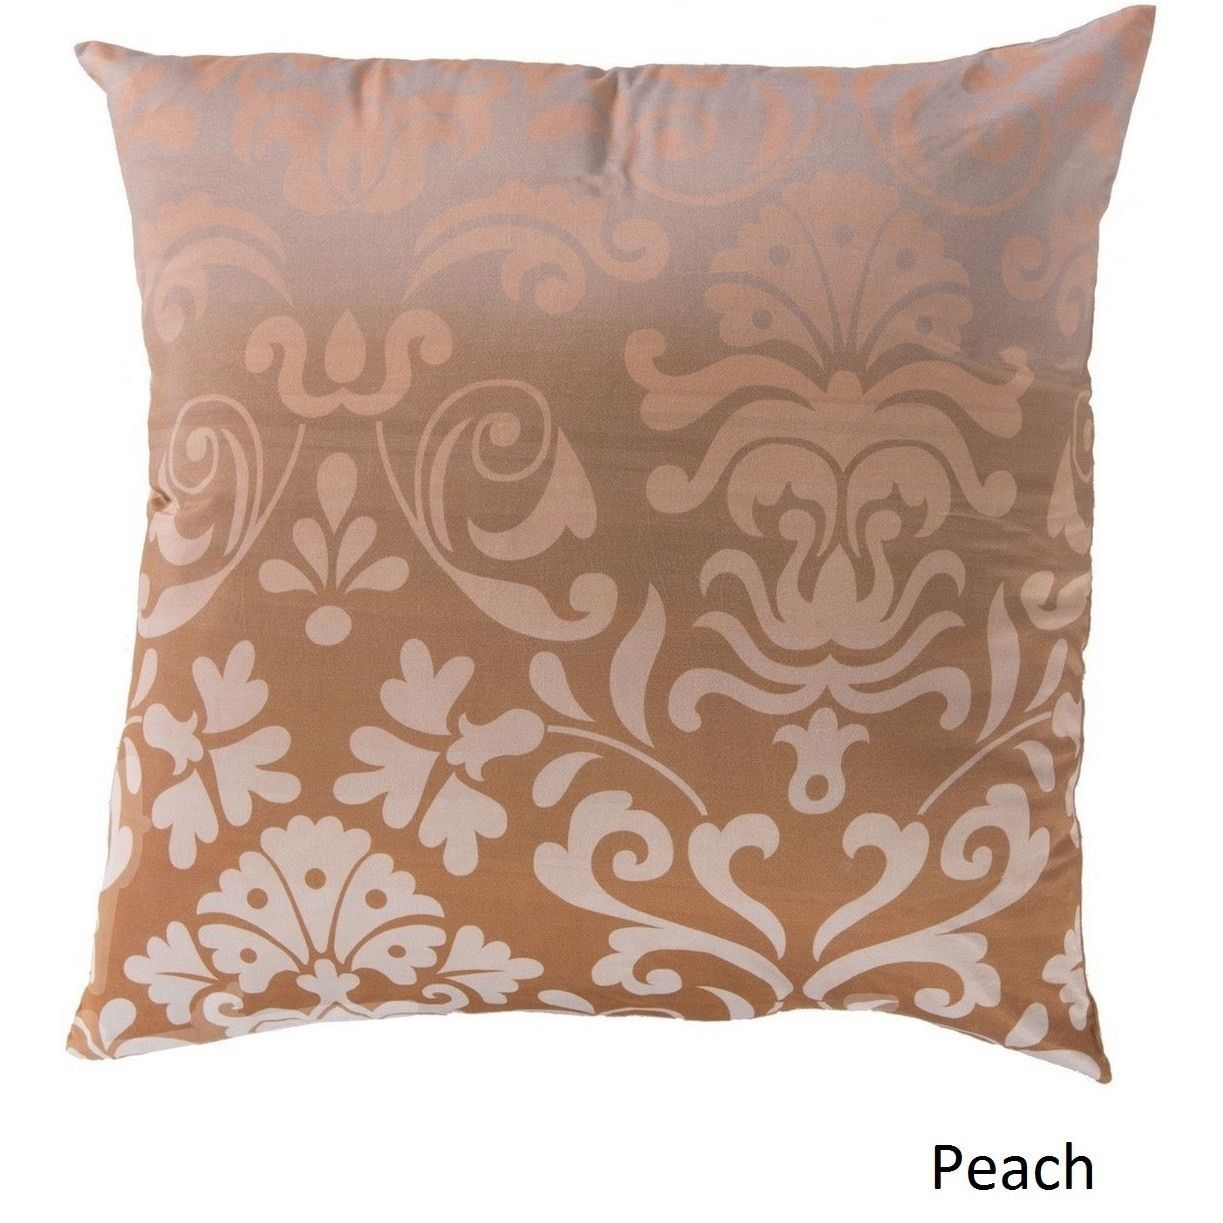 Decorative Southall 22-inch Floral Pillow Cover (Orange/Off-White (Beige)/Pink), Size 22 x 22